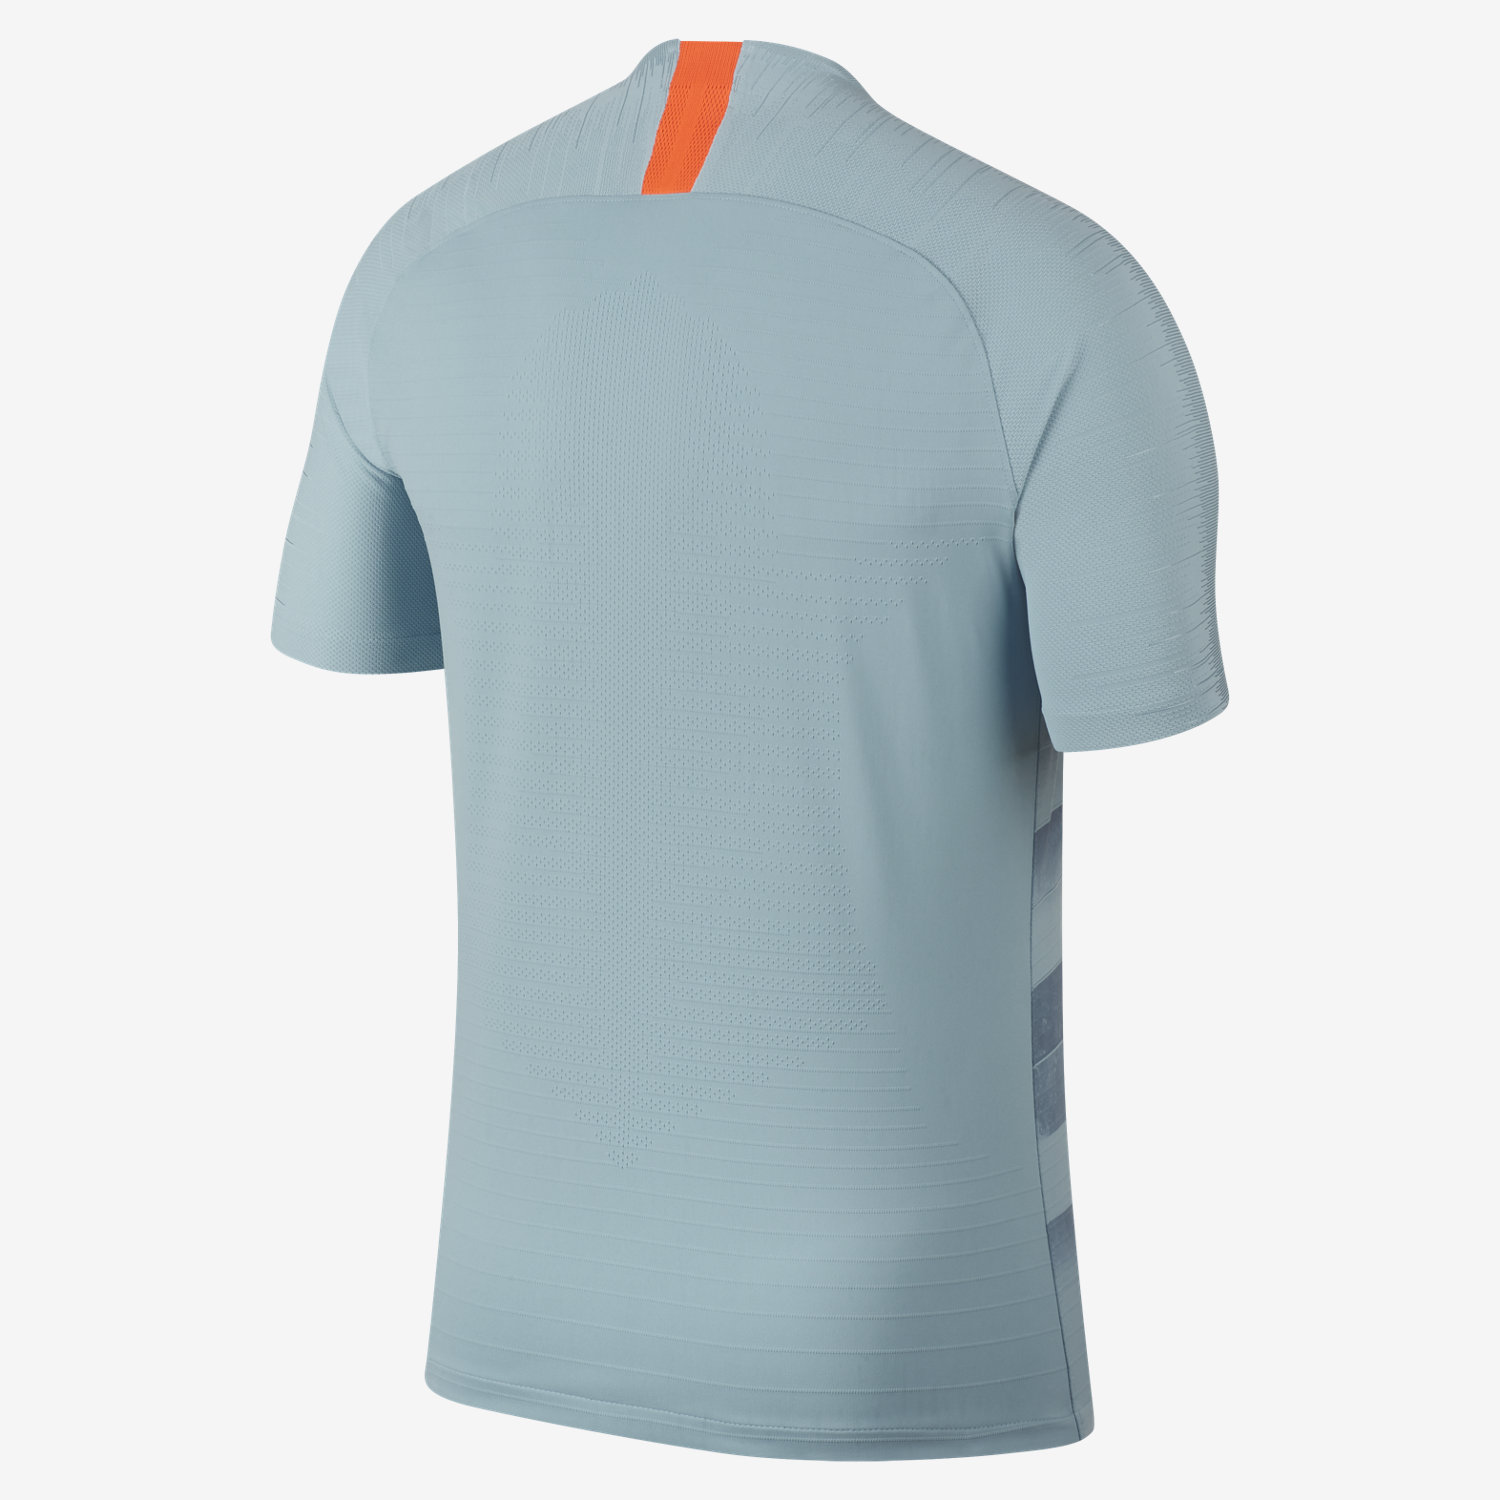 ... wholesale 2018 19 chelsea fc vapor match third mens football connected  jersey. nike uk ca2be ad75843a4